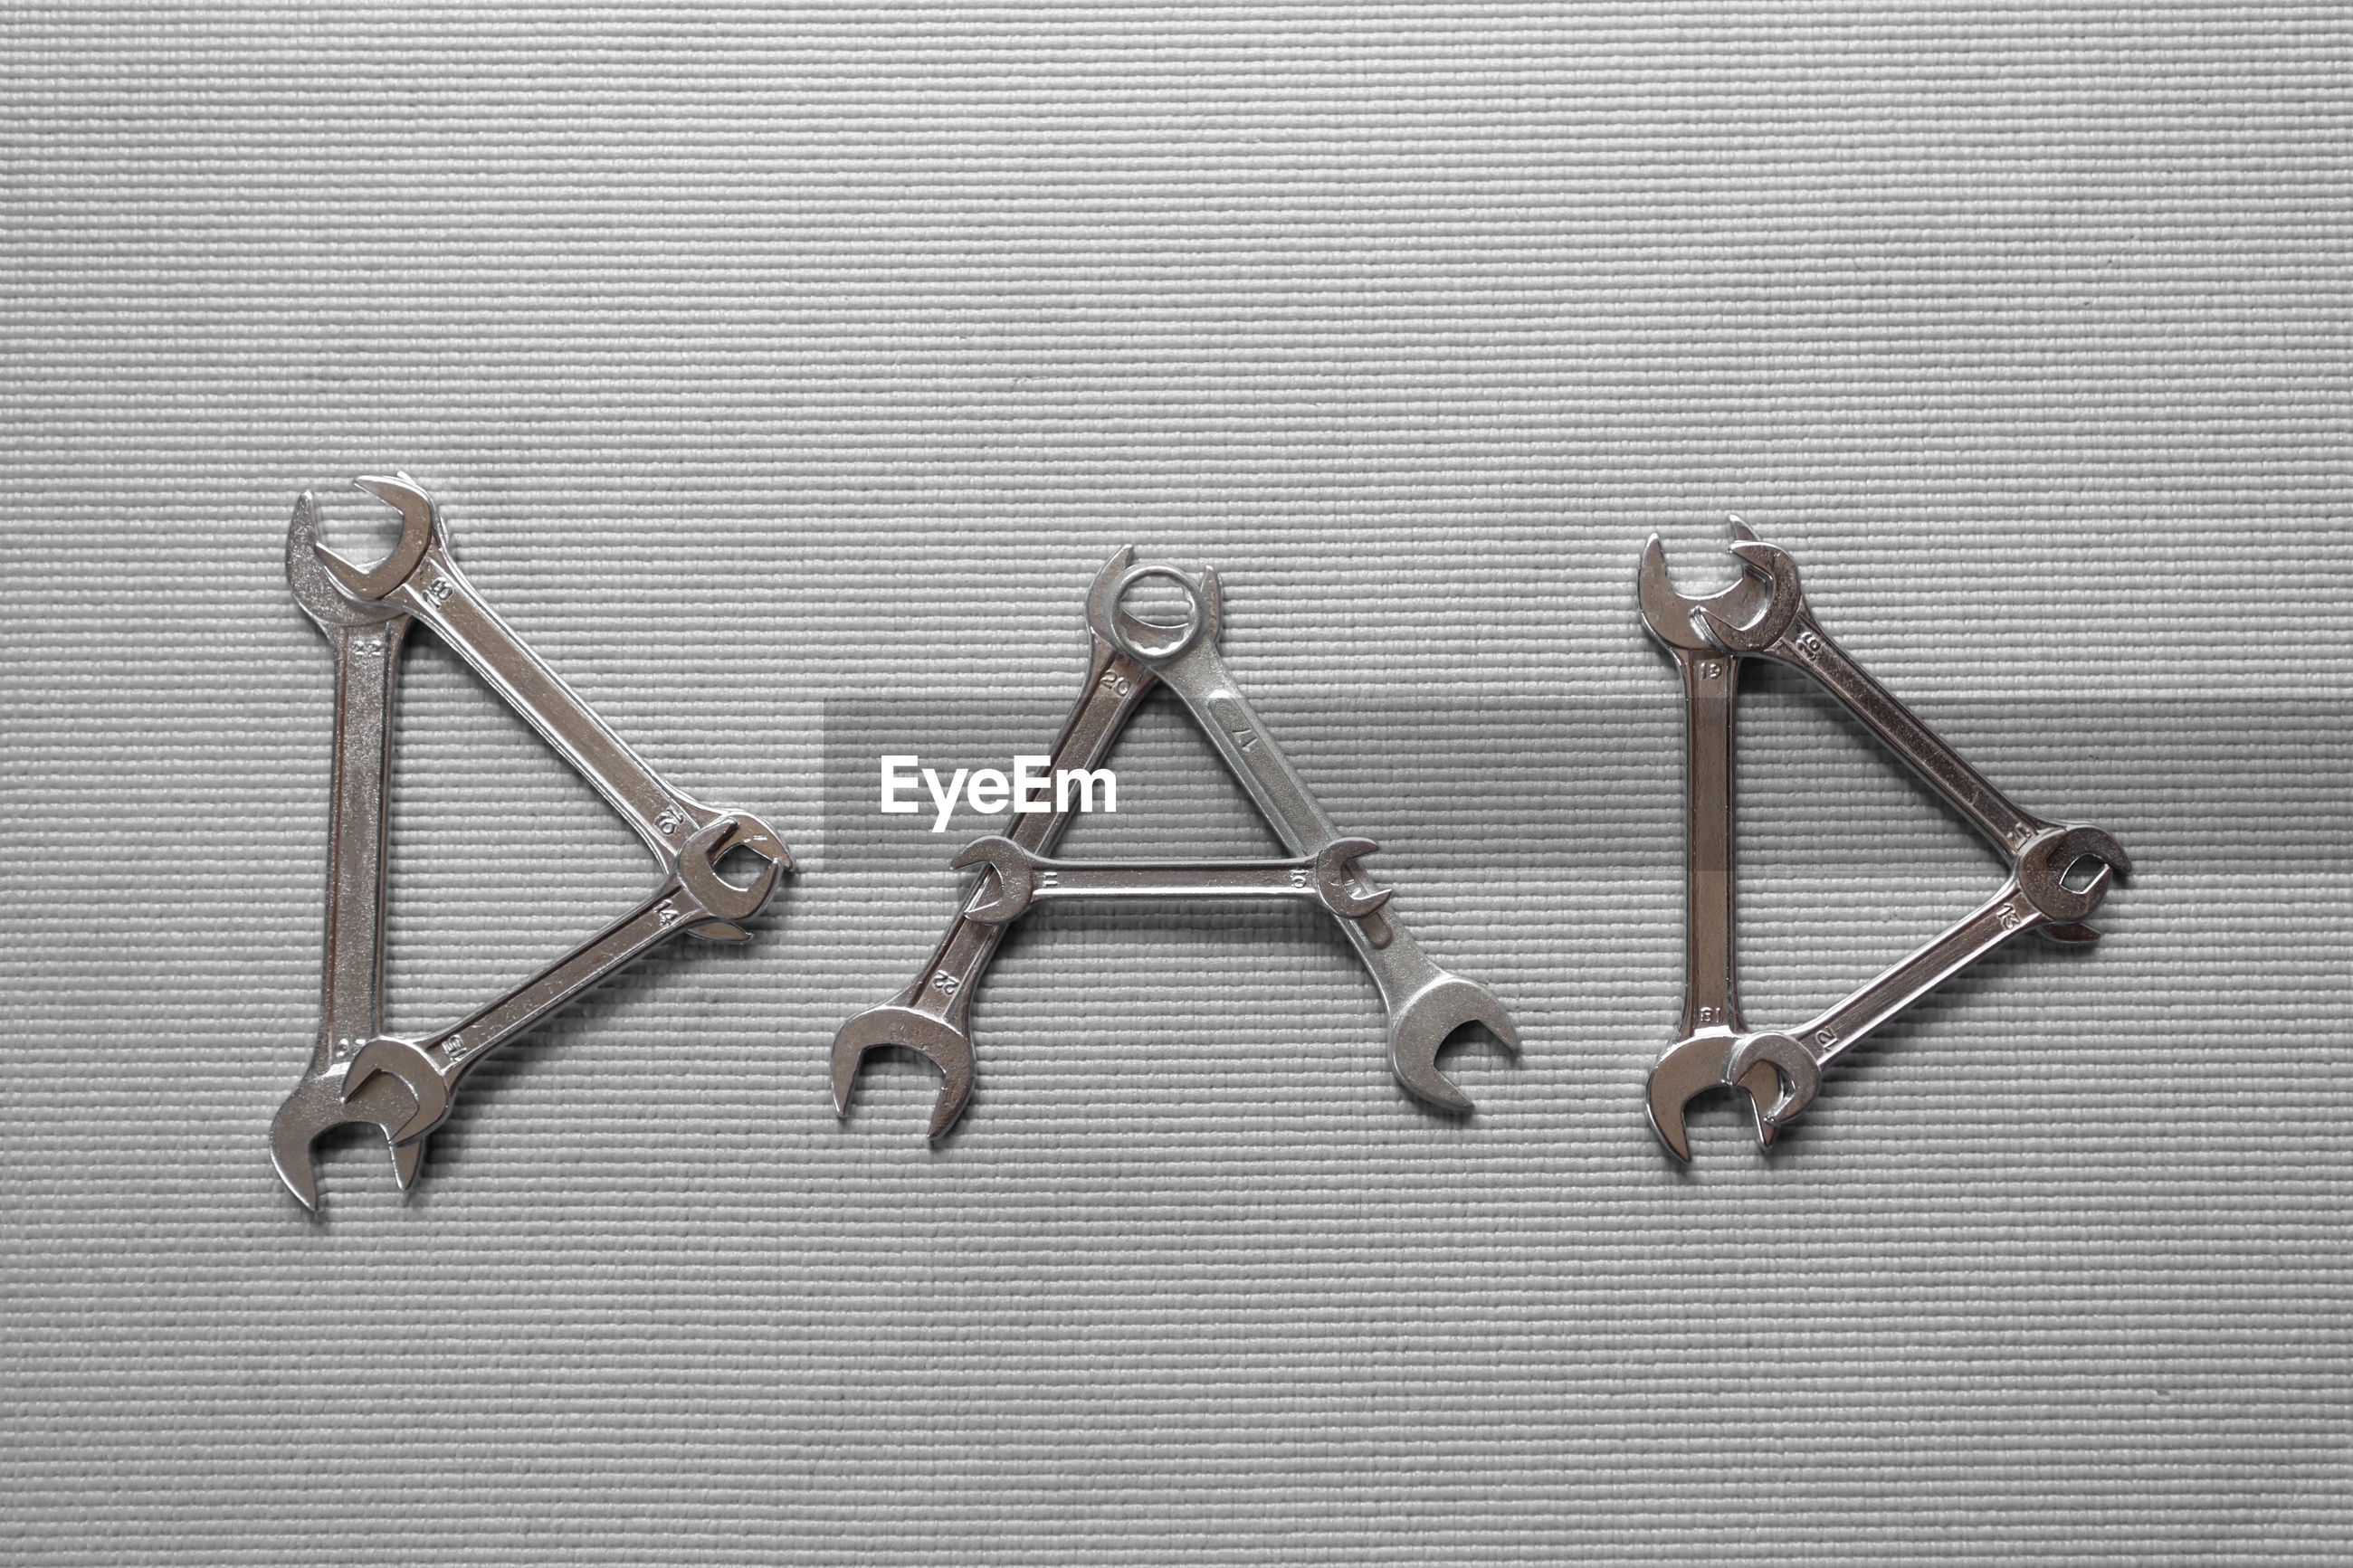 HIGH ANGLE VIEW OF CHAIN ON TABLE